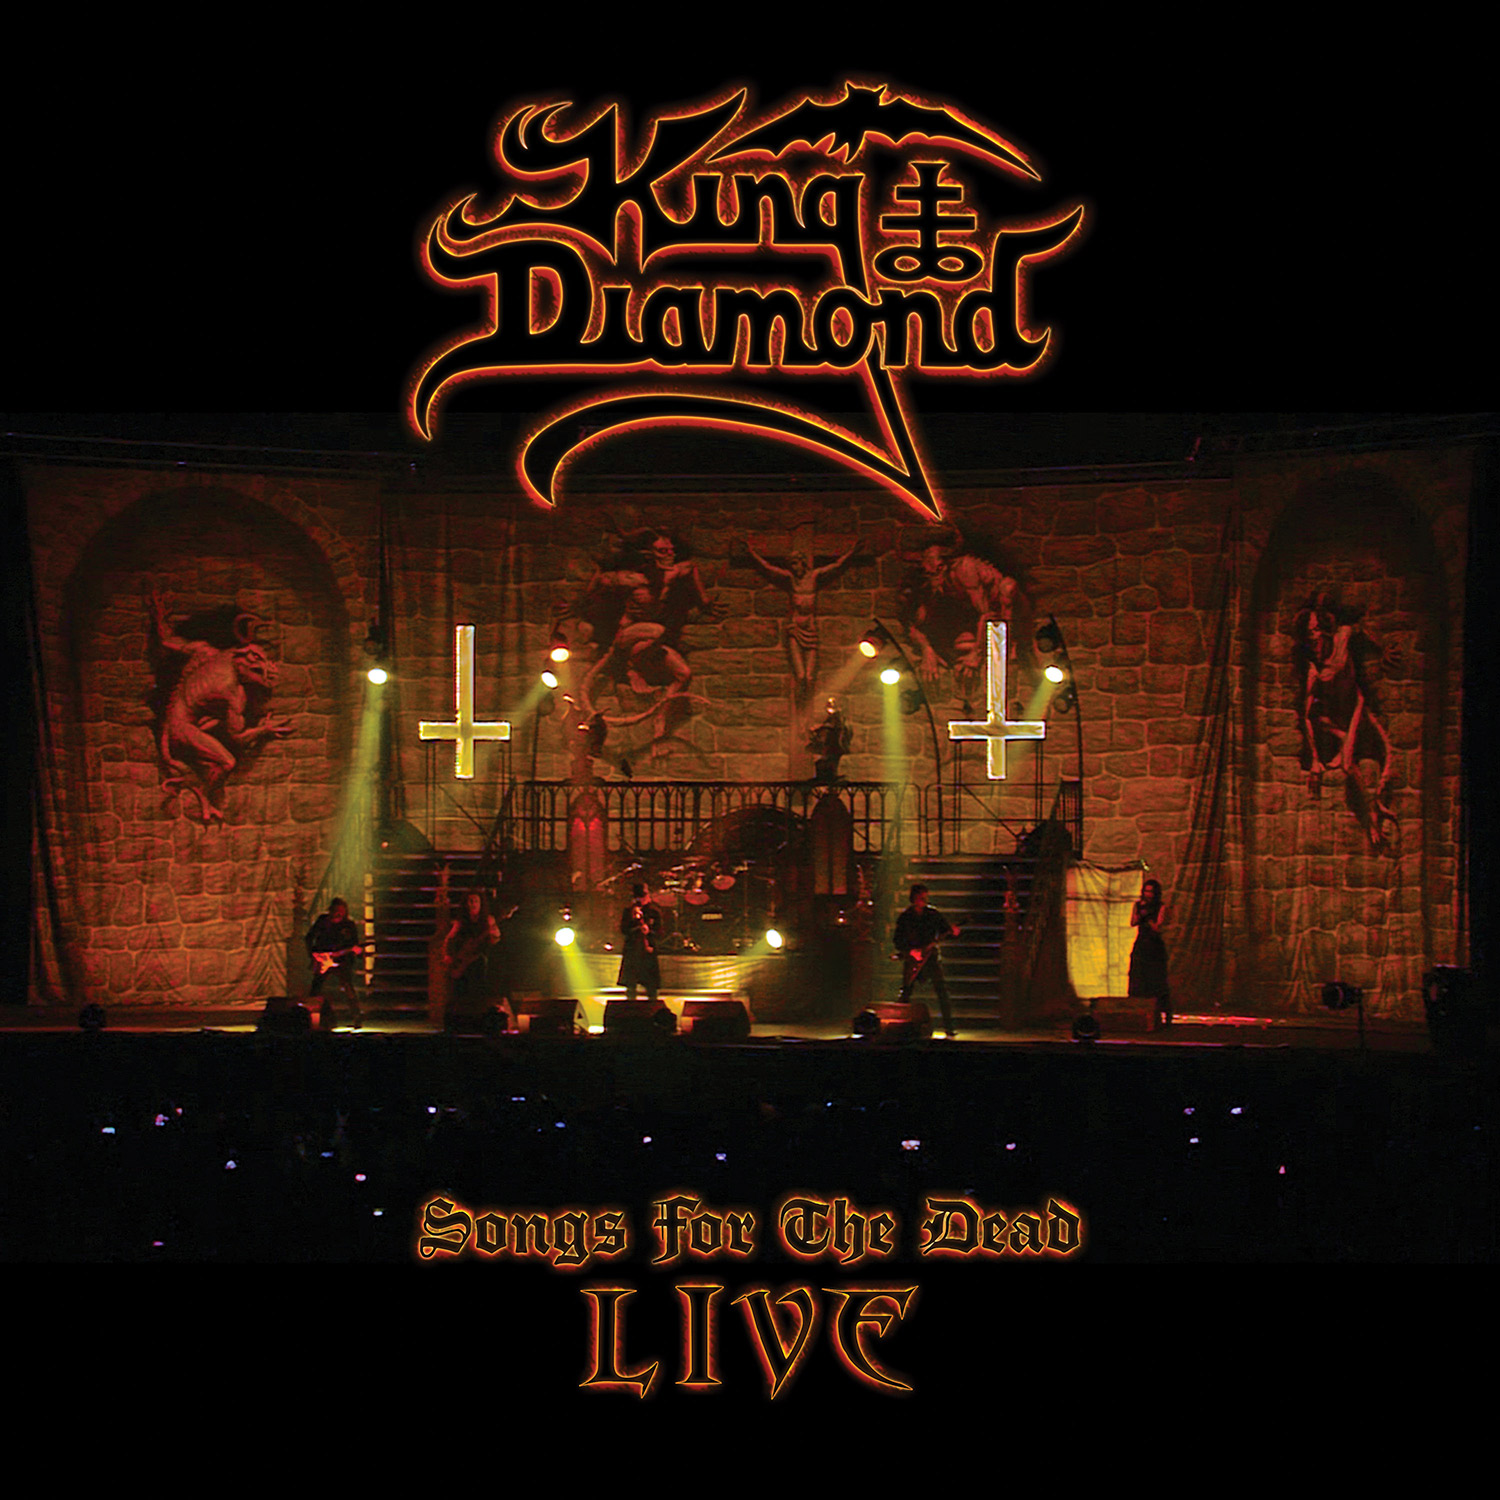 Songs for the Dead Live (Pale Orange)